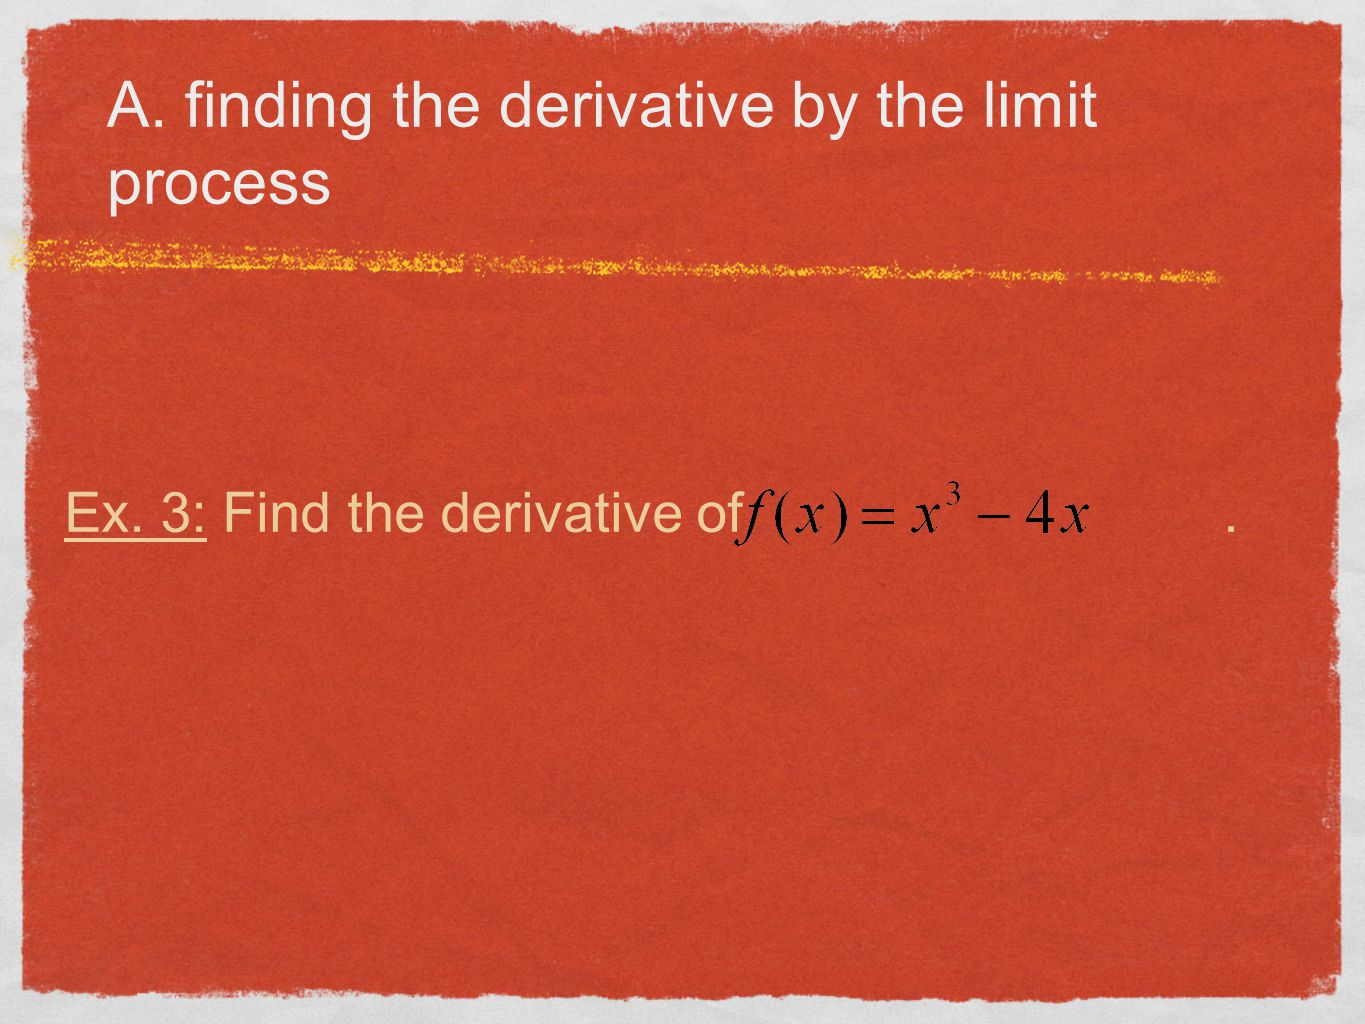 A. finding the derivative by the limit process Ex. 3: Find the derivative of.